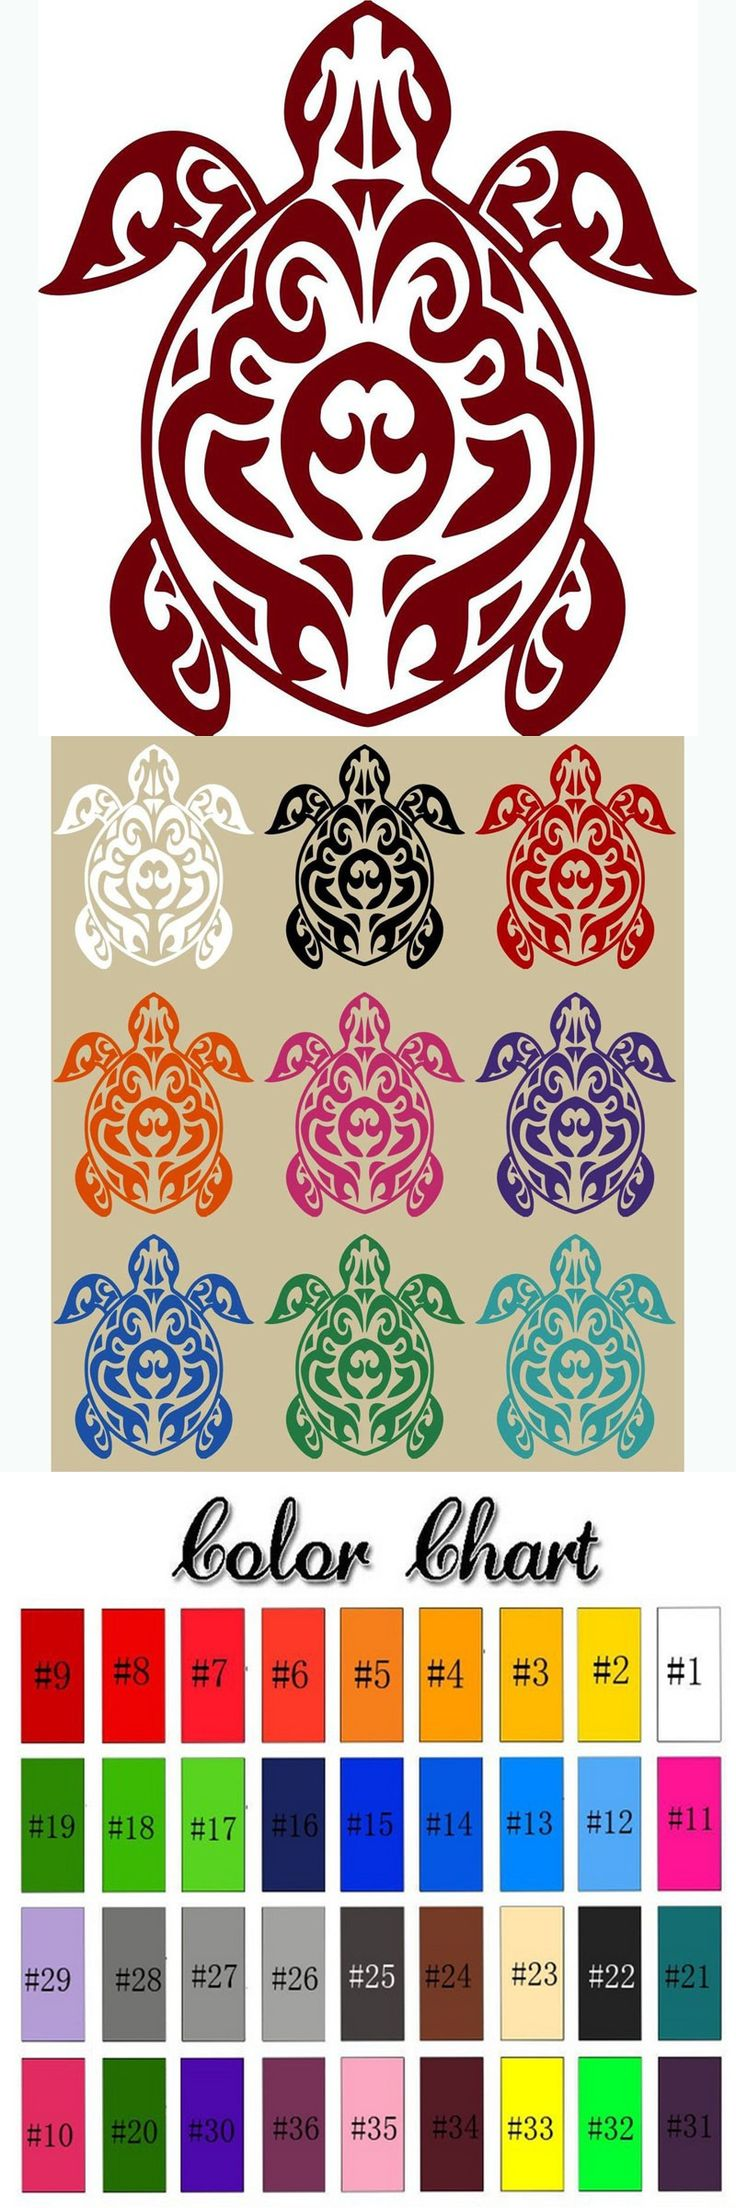 Cute Tortoise Ainmal Car Stickers Sea Turtle Posters Home Decor Carton Tortoise Wall Stickers For Kids Room Vinyl Car Decals $15.79